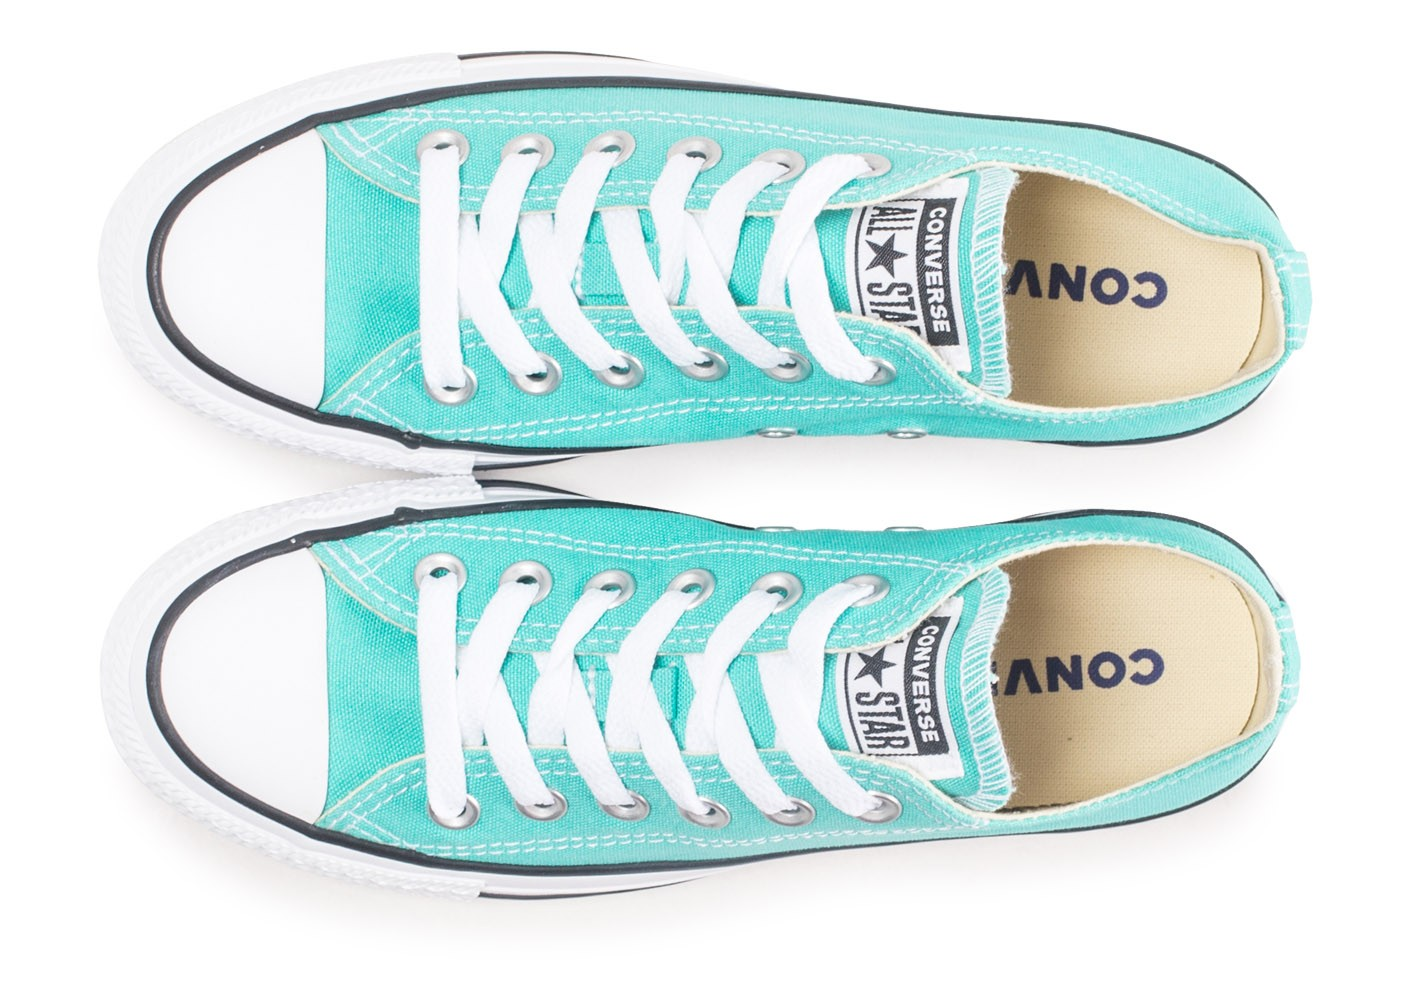 Converse Chuck Taylor All Star Low bleu turquoise ...